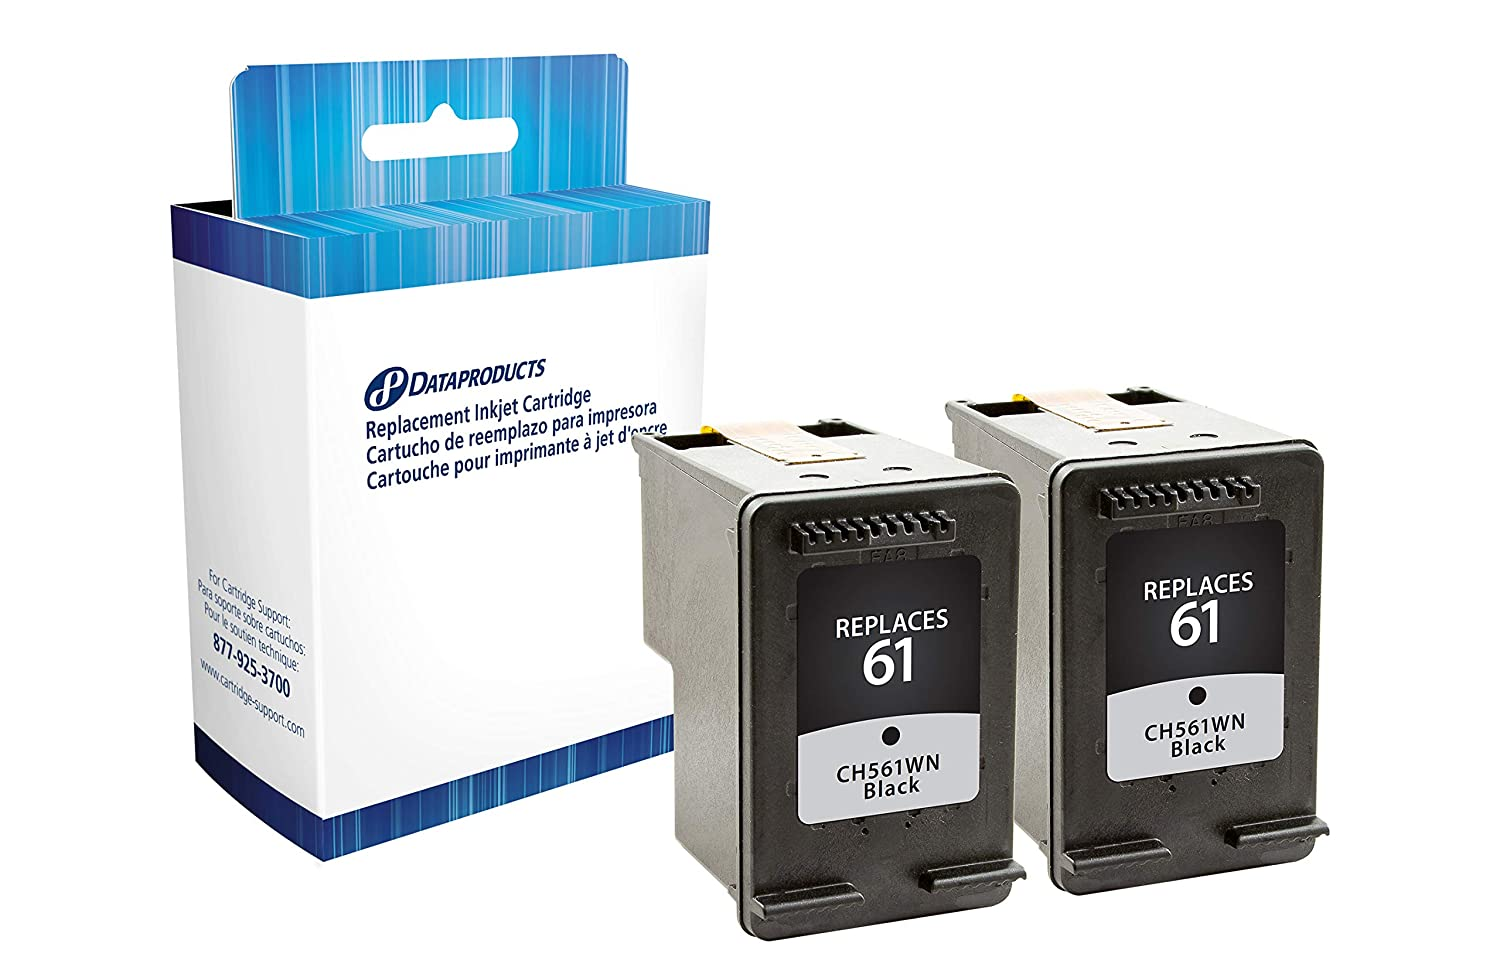 Amazon.com: Dataproducts HP 61 Inkjet Cartridges, Black ...